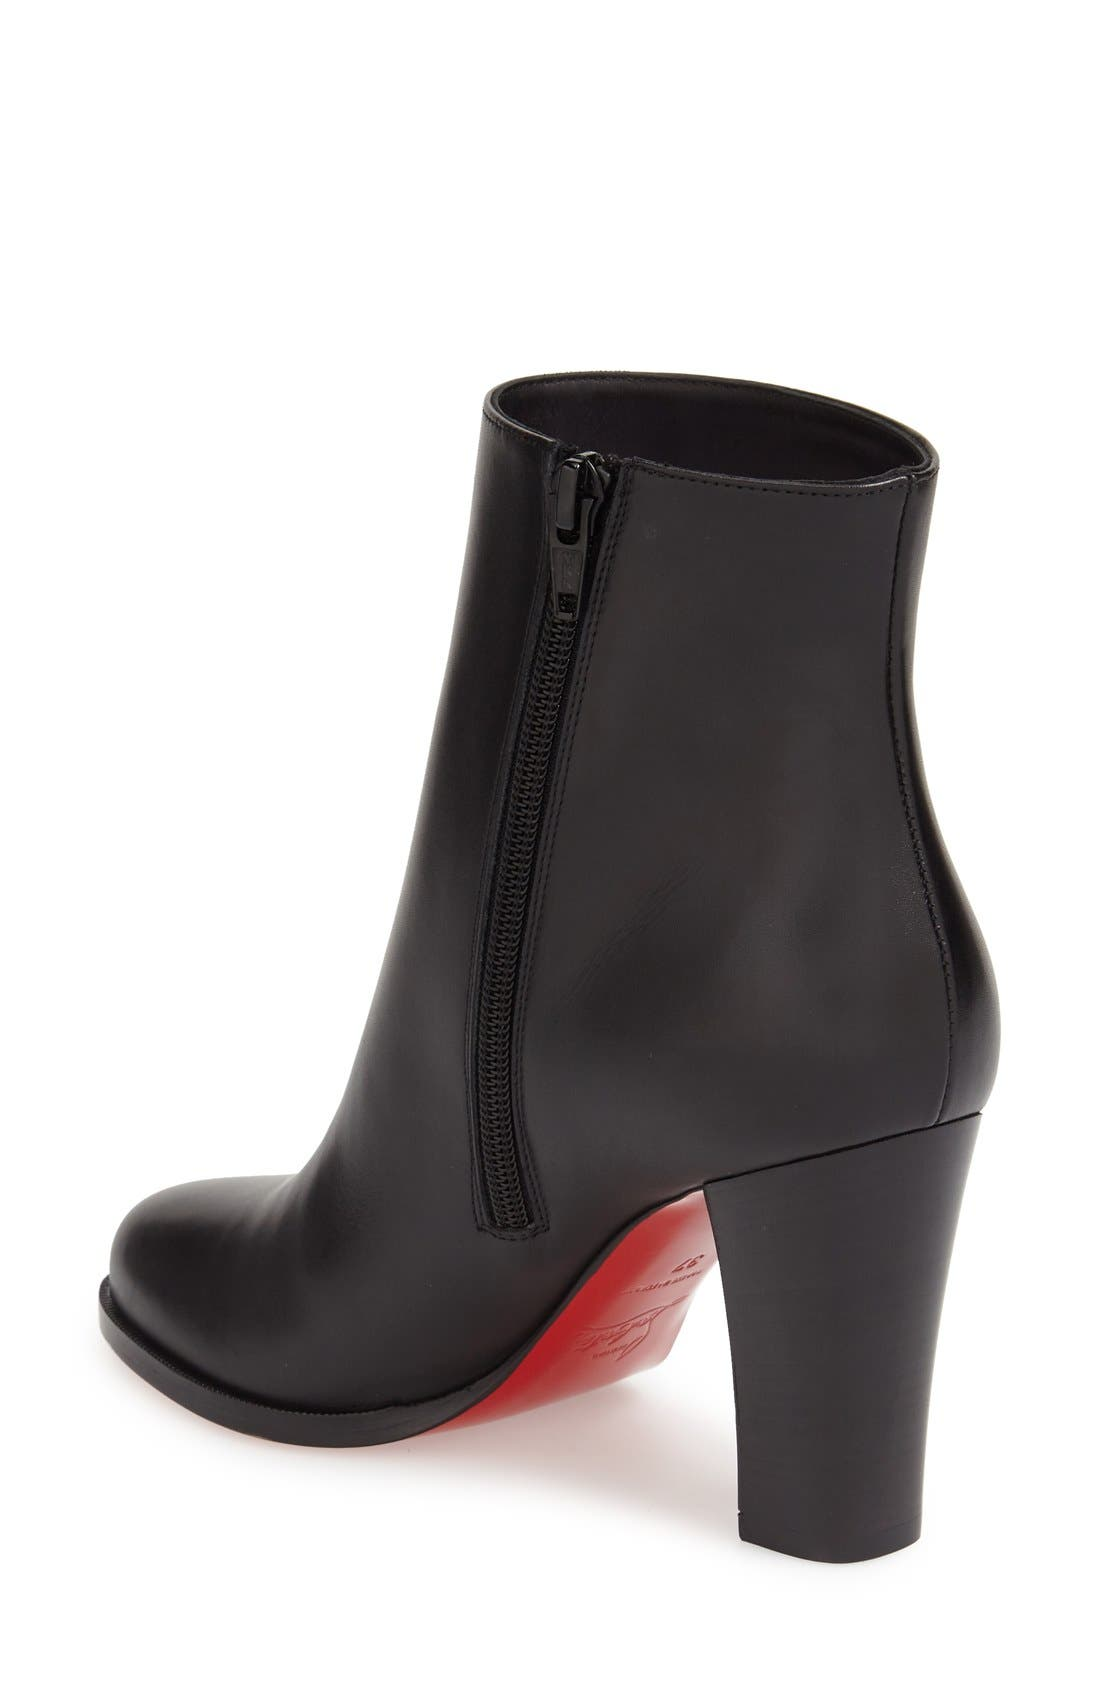 Christian Louboutin Women's Olivia Spiked Boot